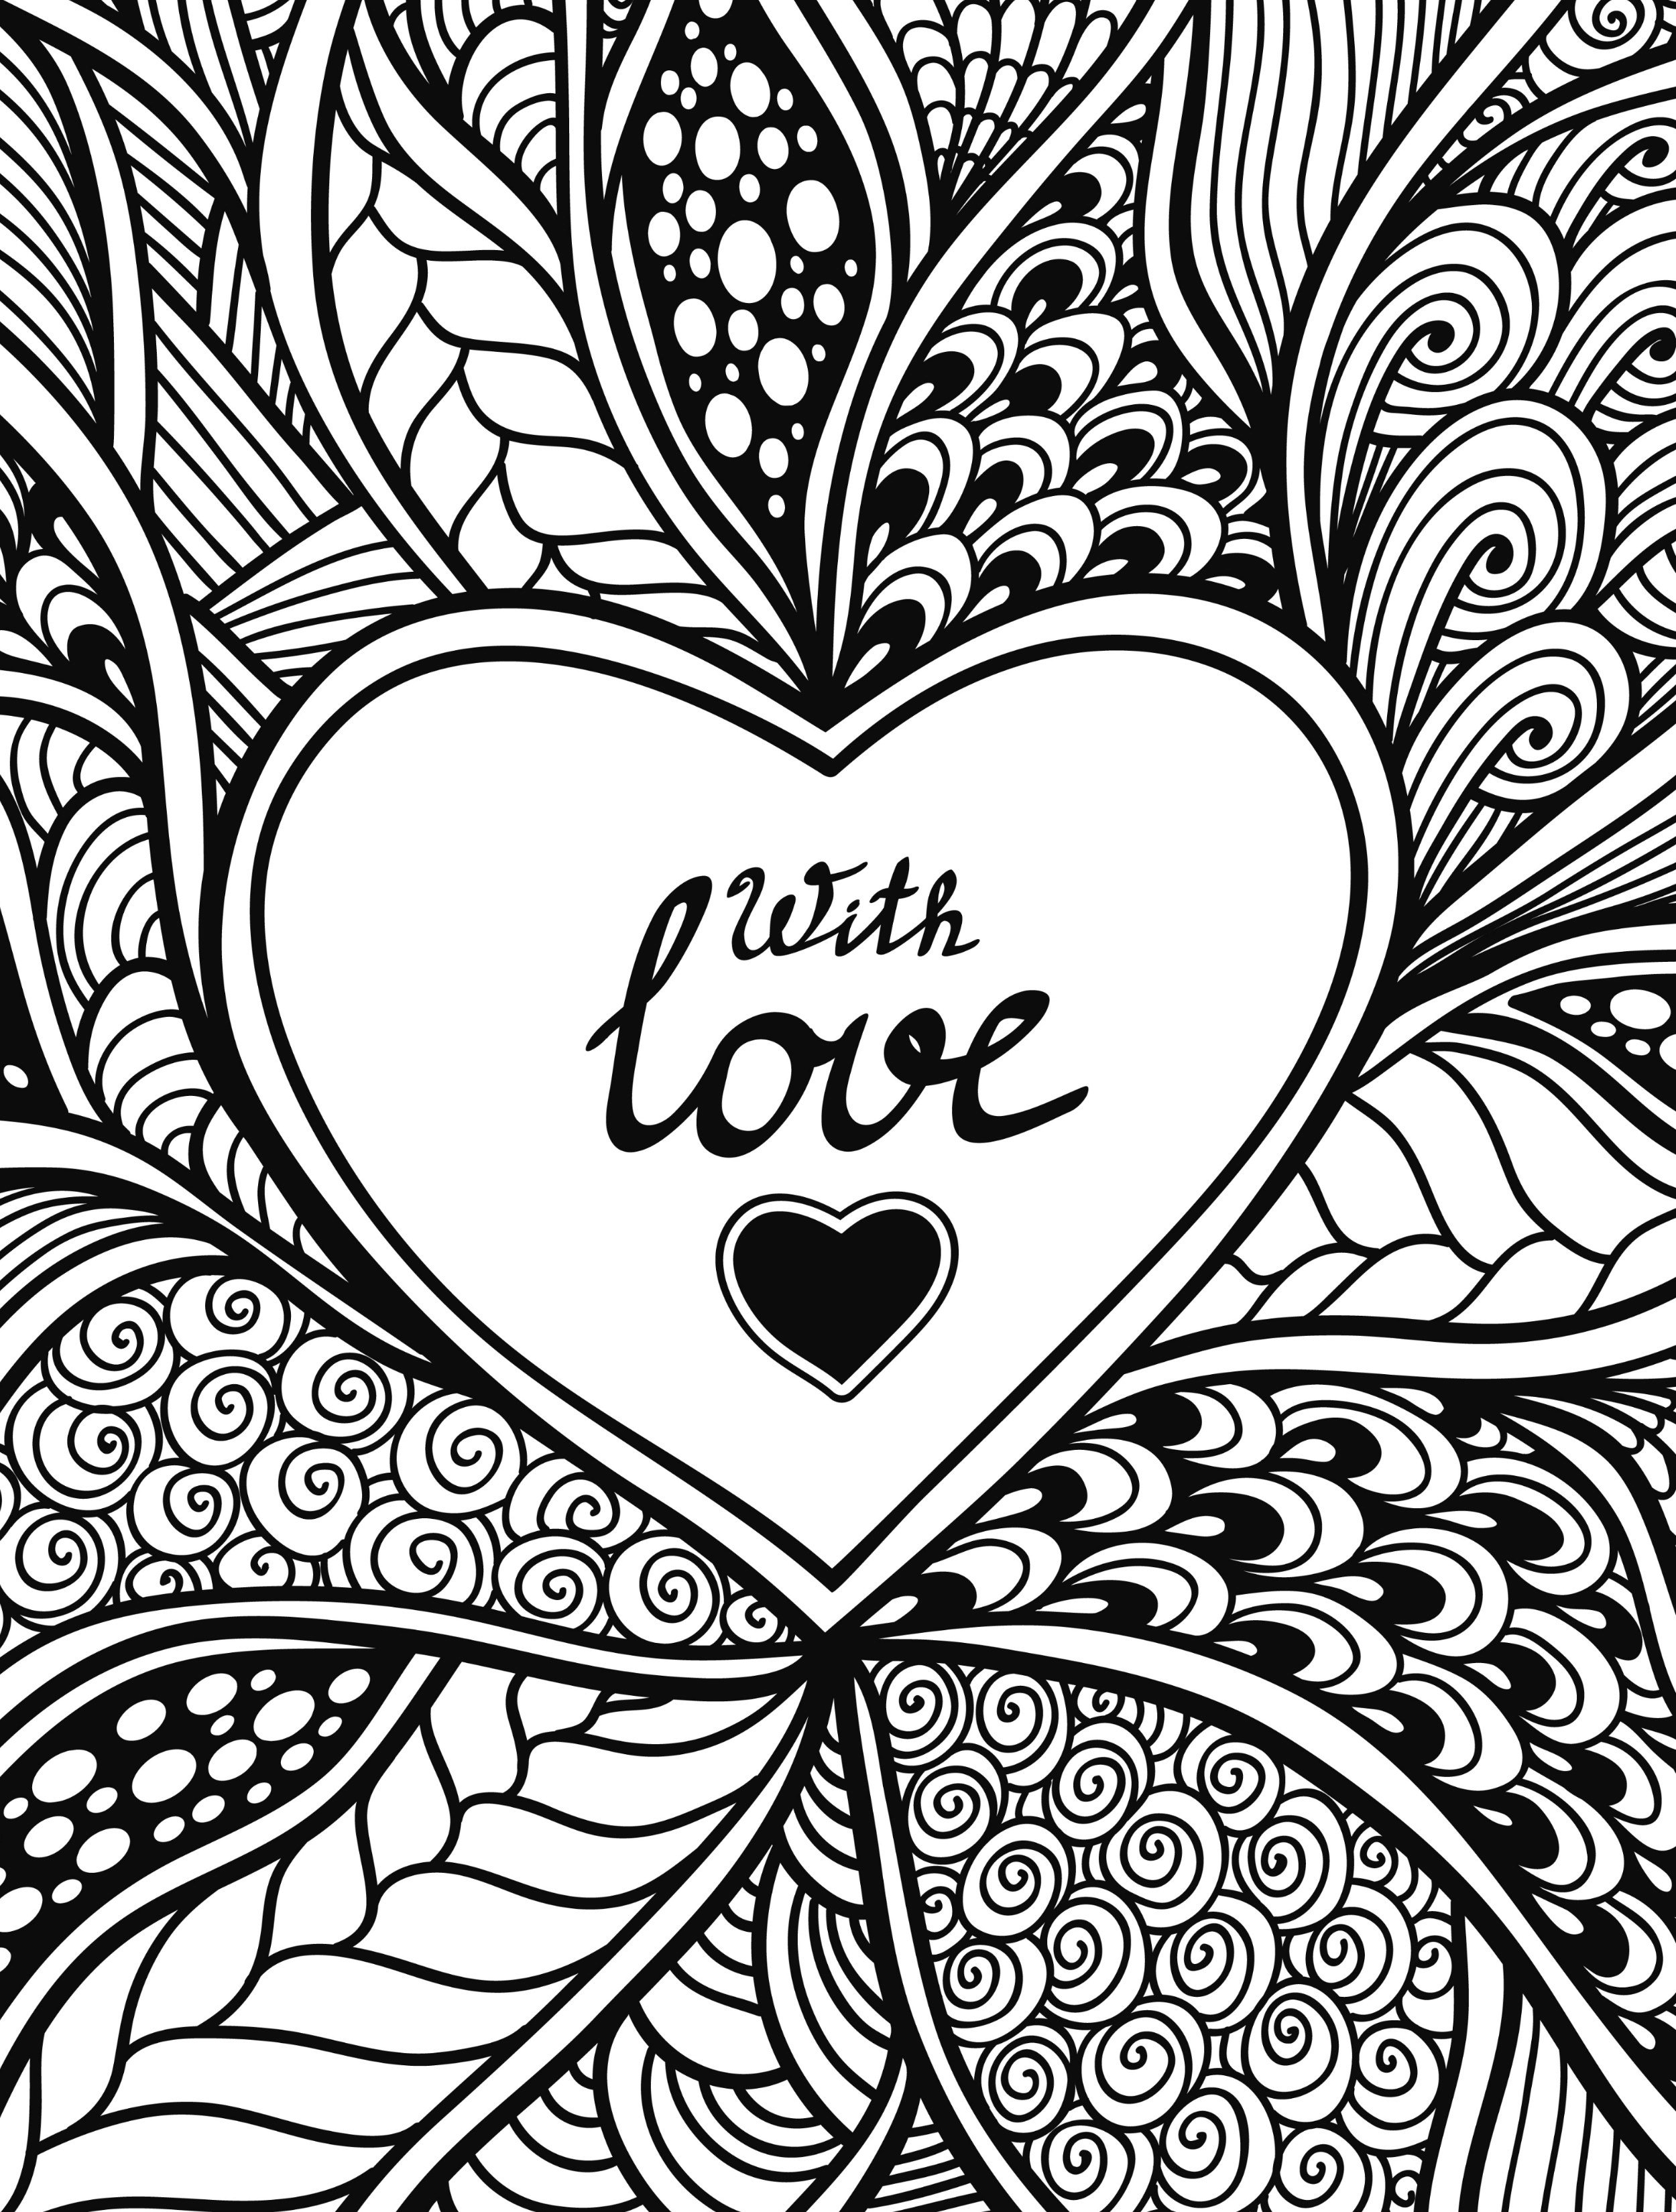 With love valentines day coloring pages for adults